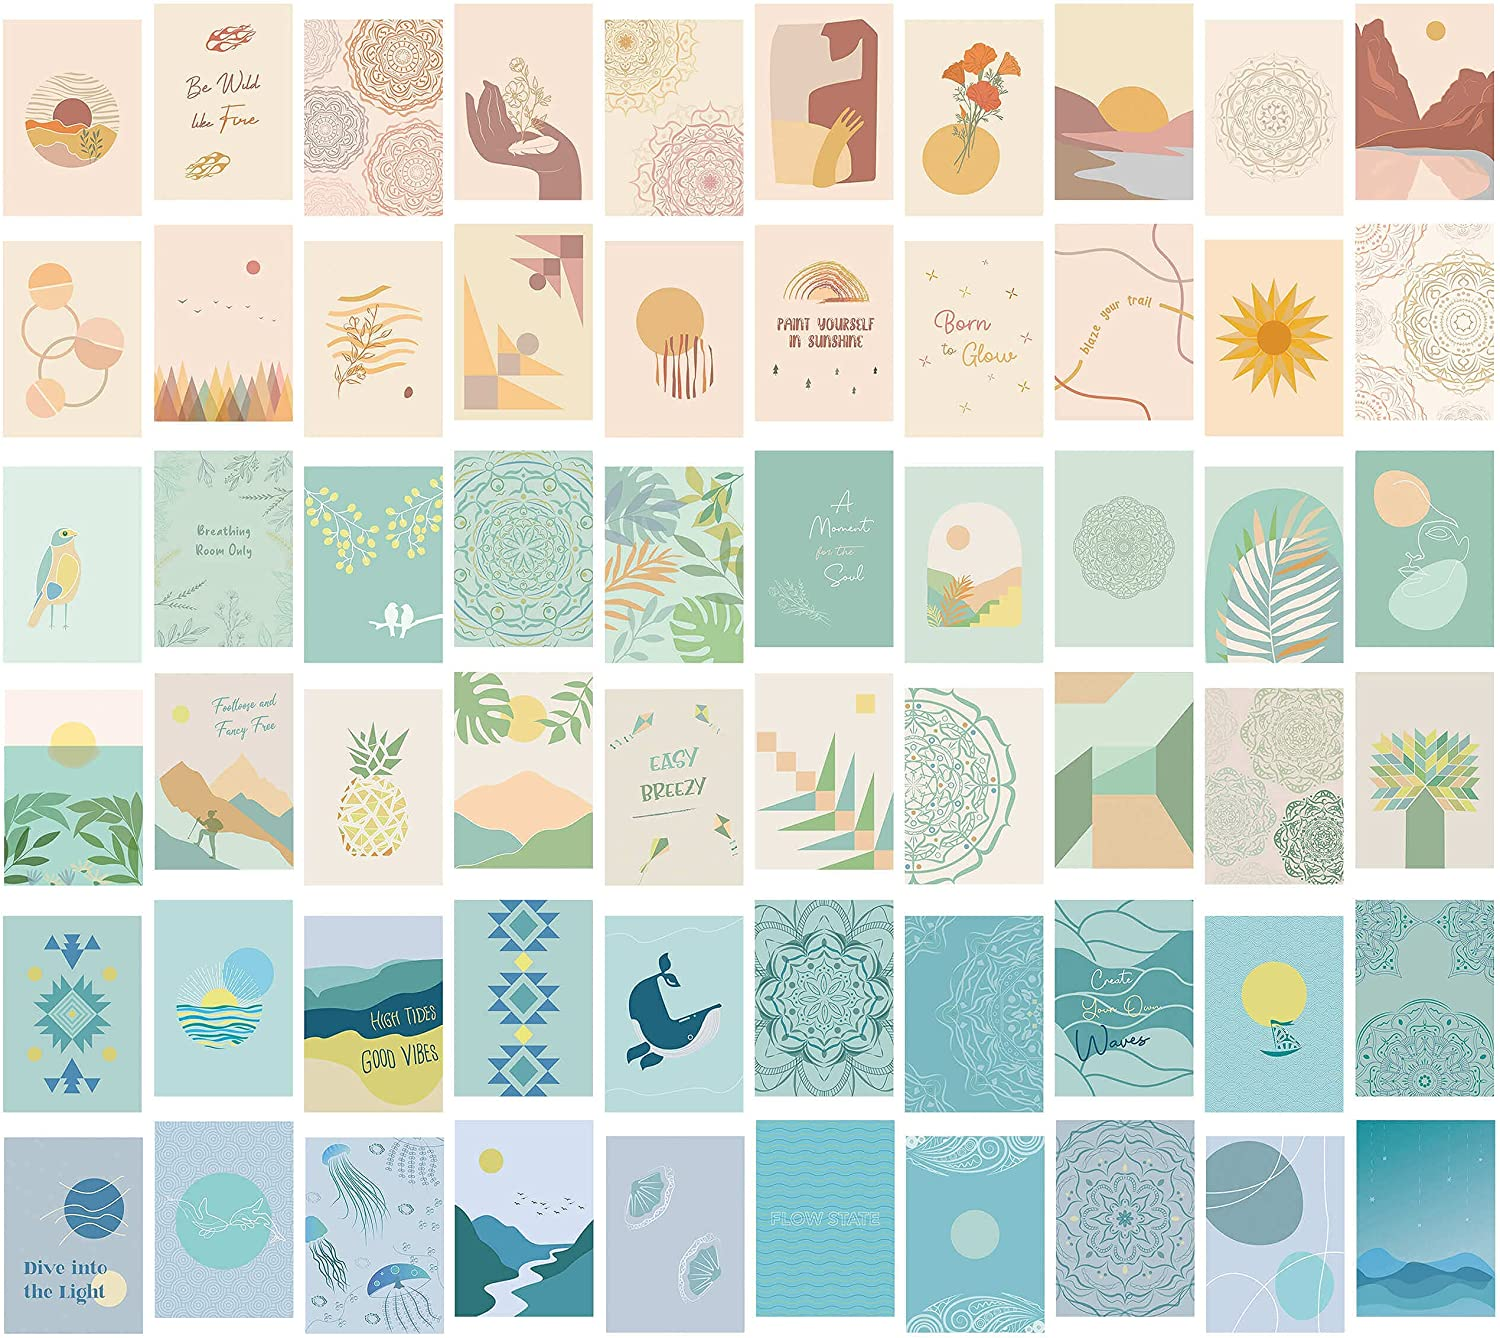 60PCS Boho Wall Collage Kit (5x7) | 3 Sets in 1 | Nature Themed Cute Wall Art Prints in Pretty Pastel Colors | Aesthetic Room Decor by Vibes and Vistas